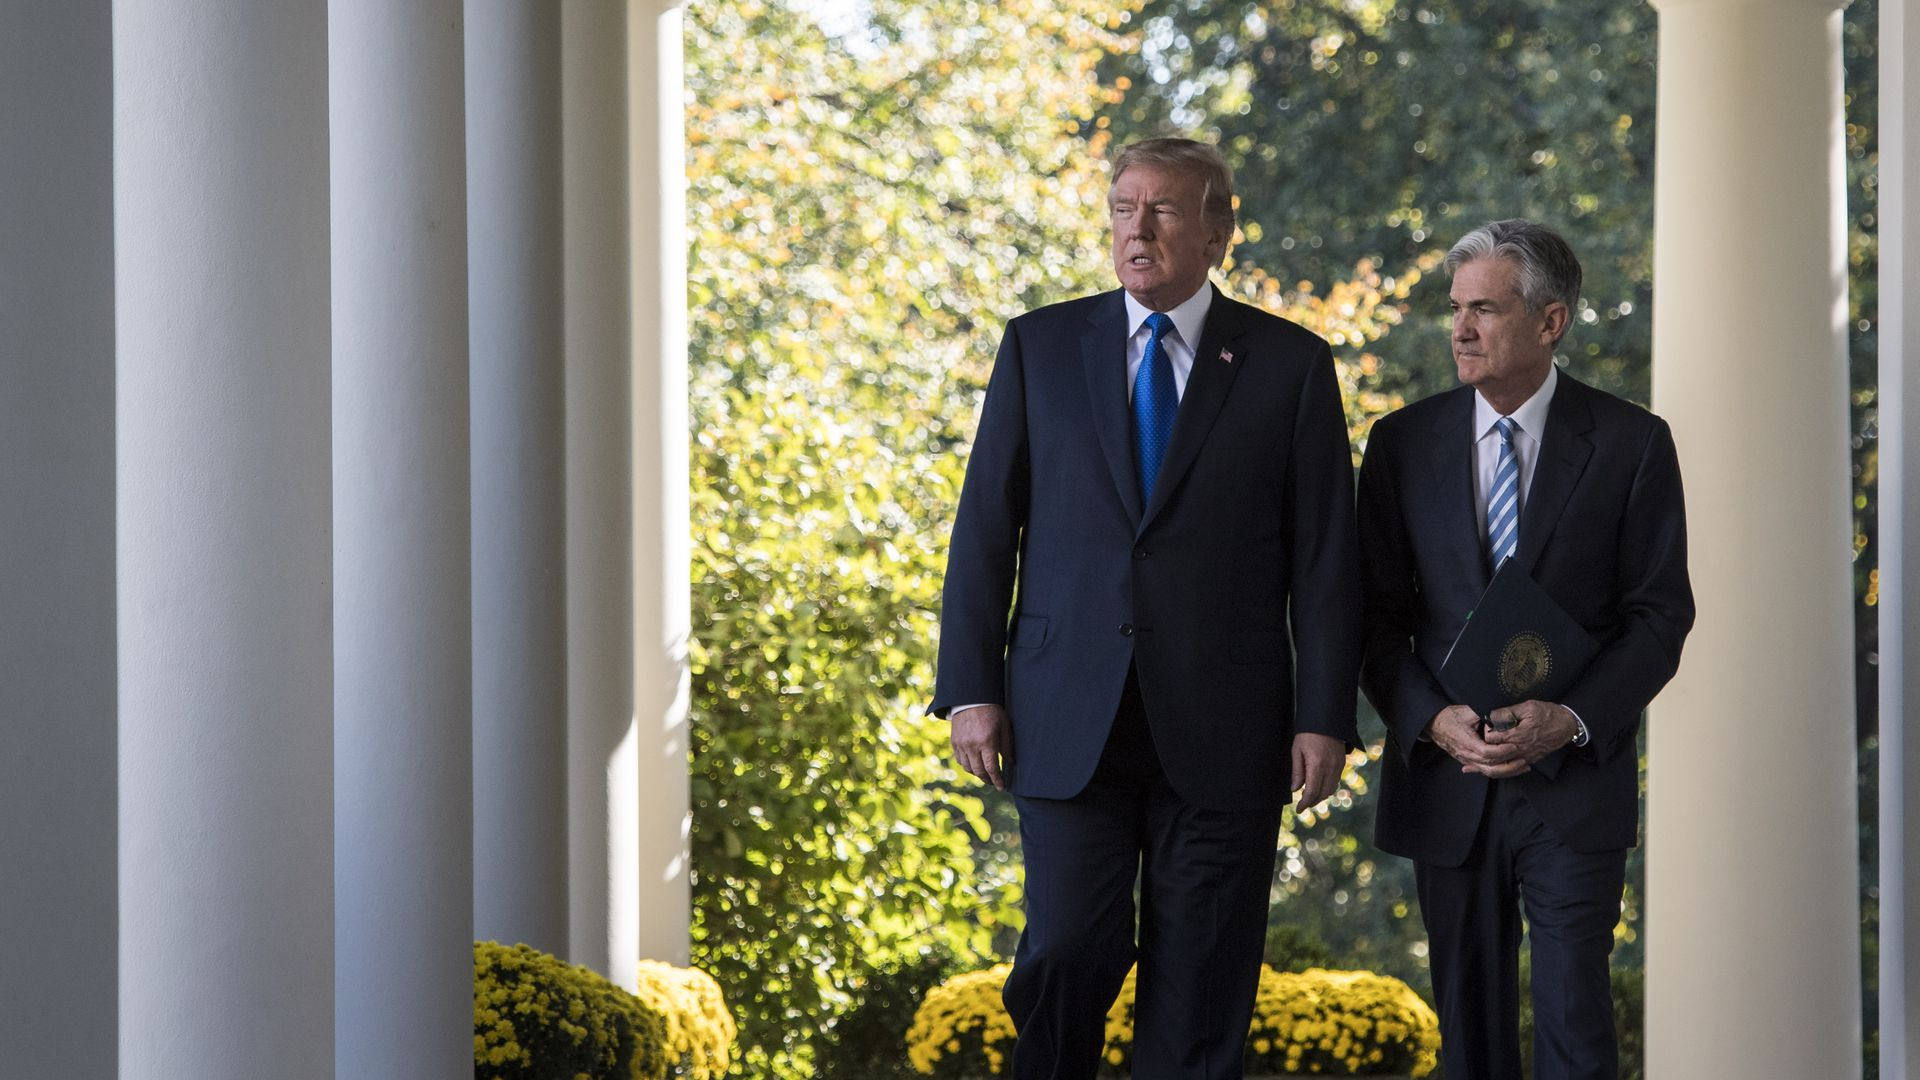 Trump walks out with Fed's Jerome Powell to announce him as his nominee for the next chair of the Federal Reserve in the Rose Garden